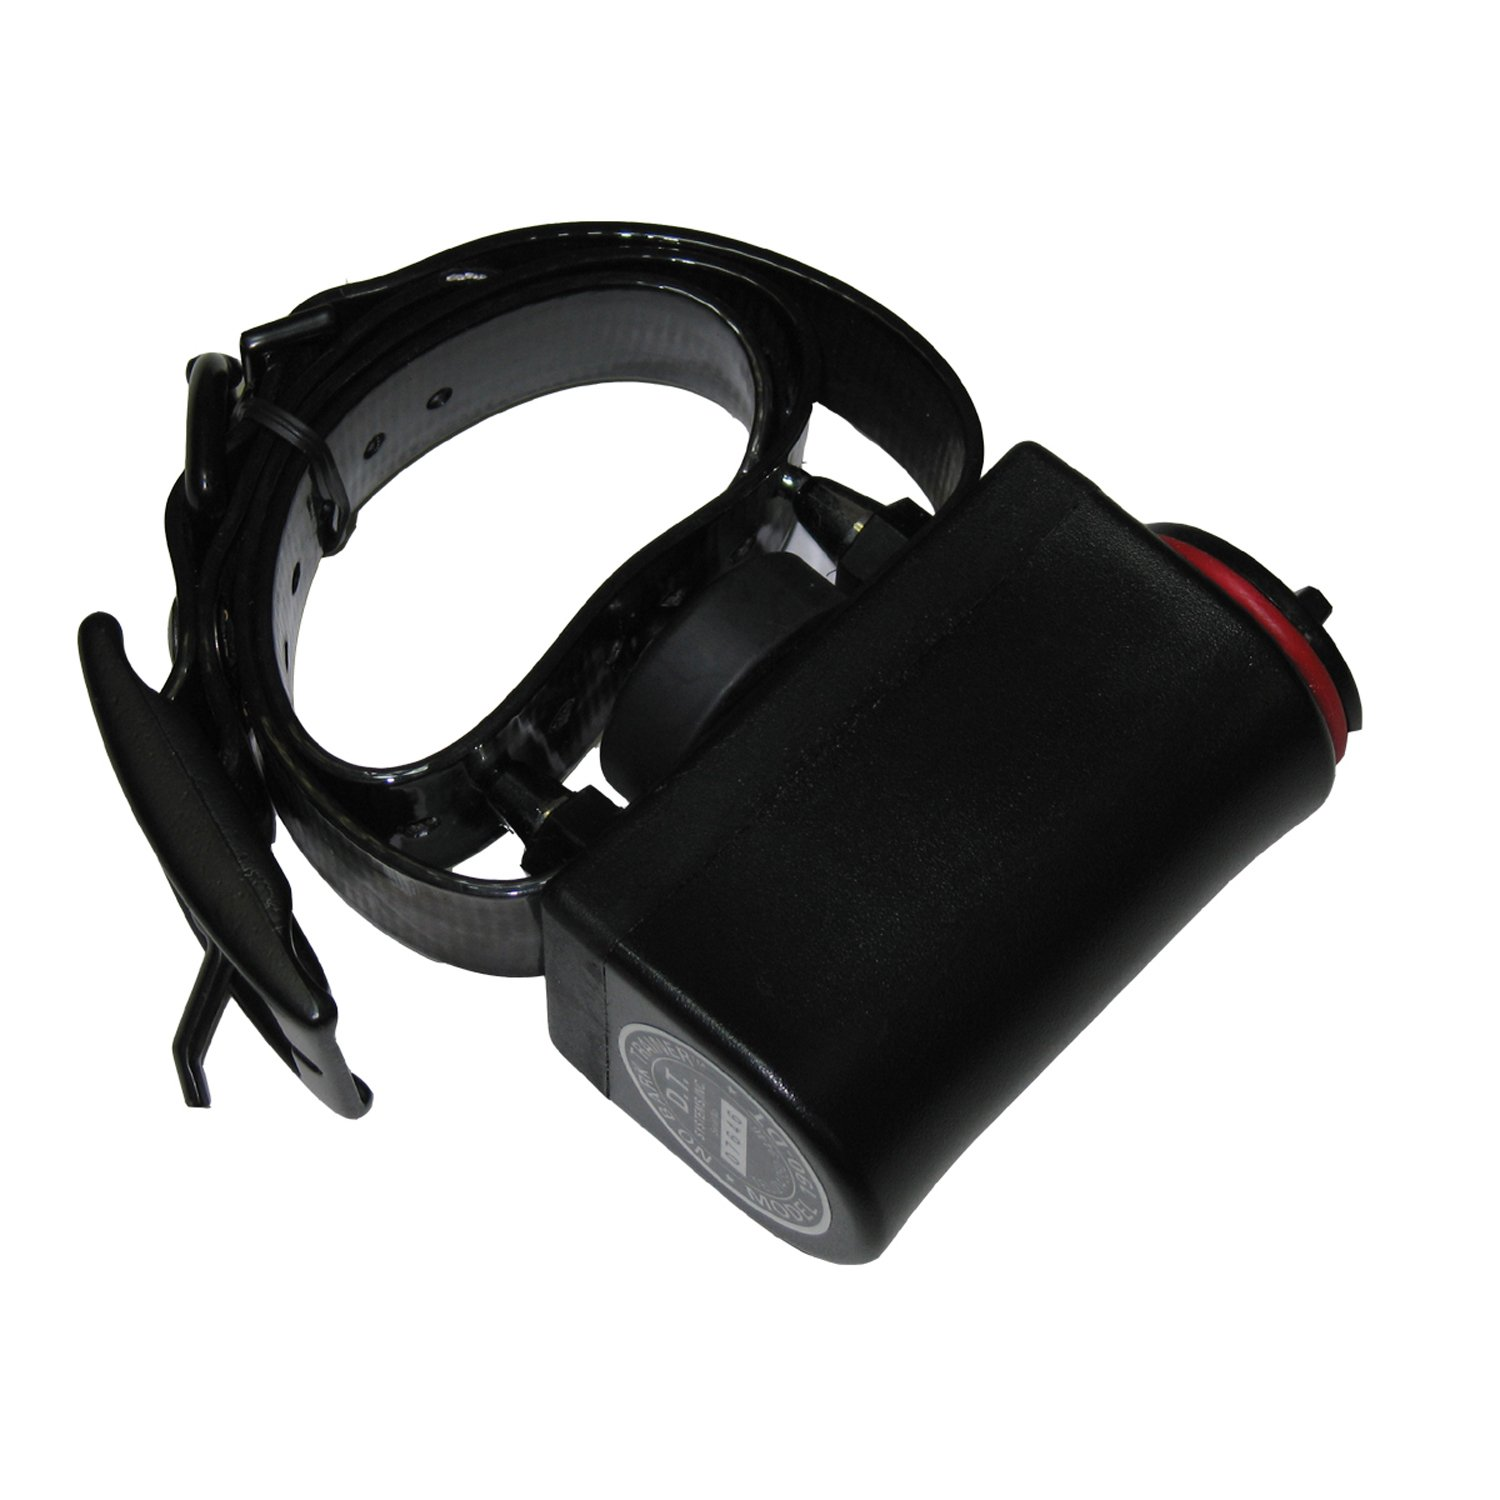 DT Systems No Bark Trainer 190, 9 levels of adjustable intensity, fits Medium to X Large Dogs